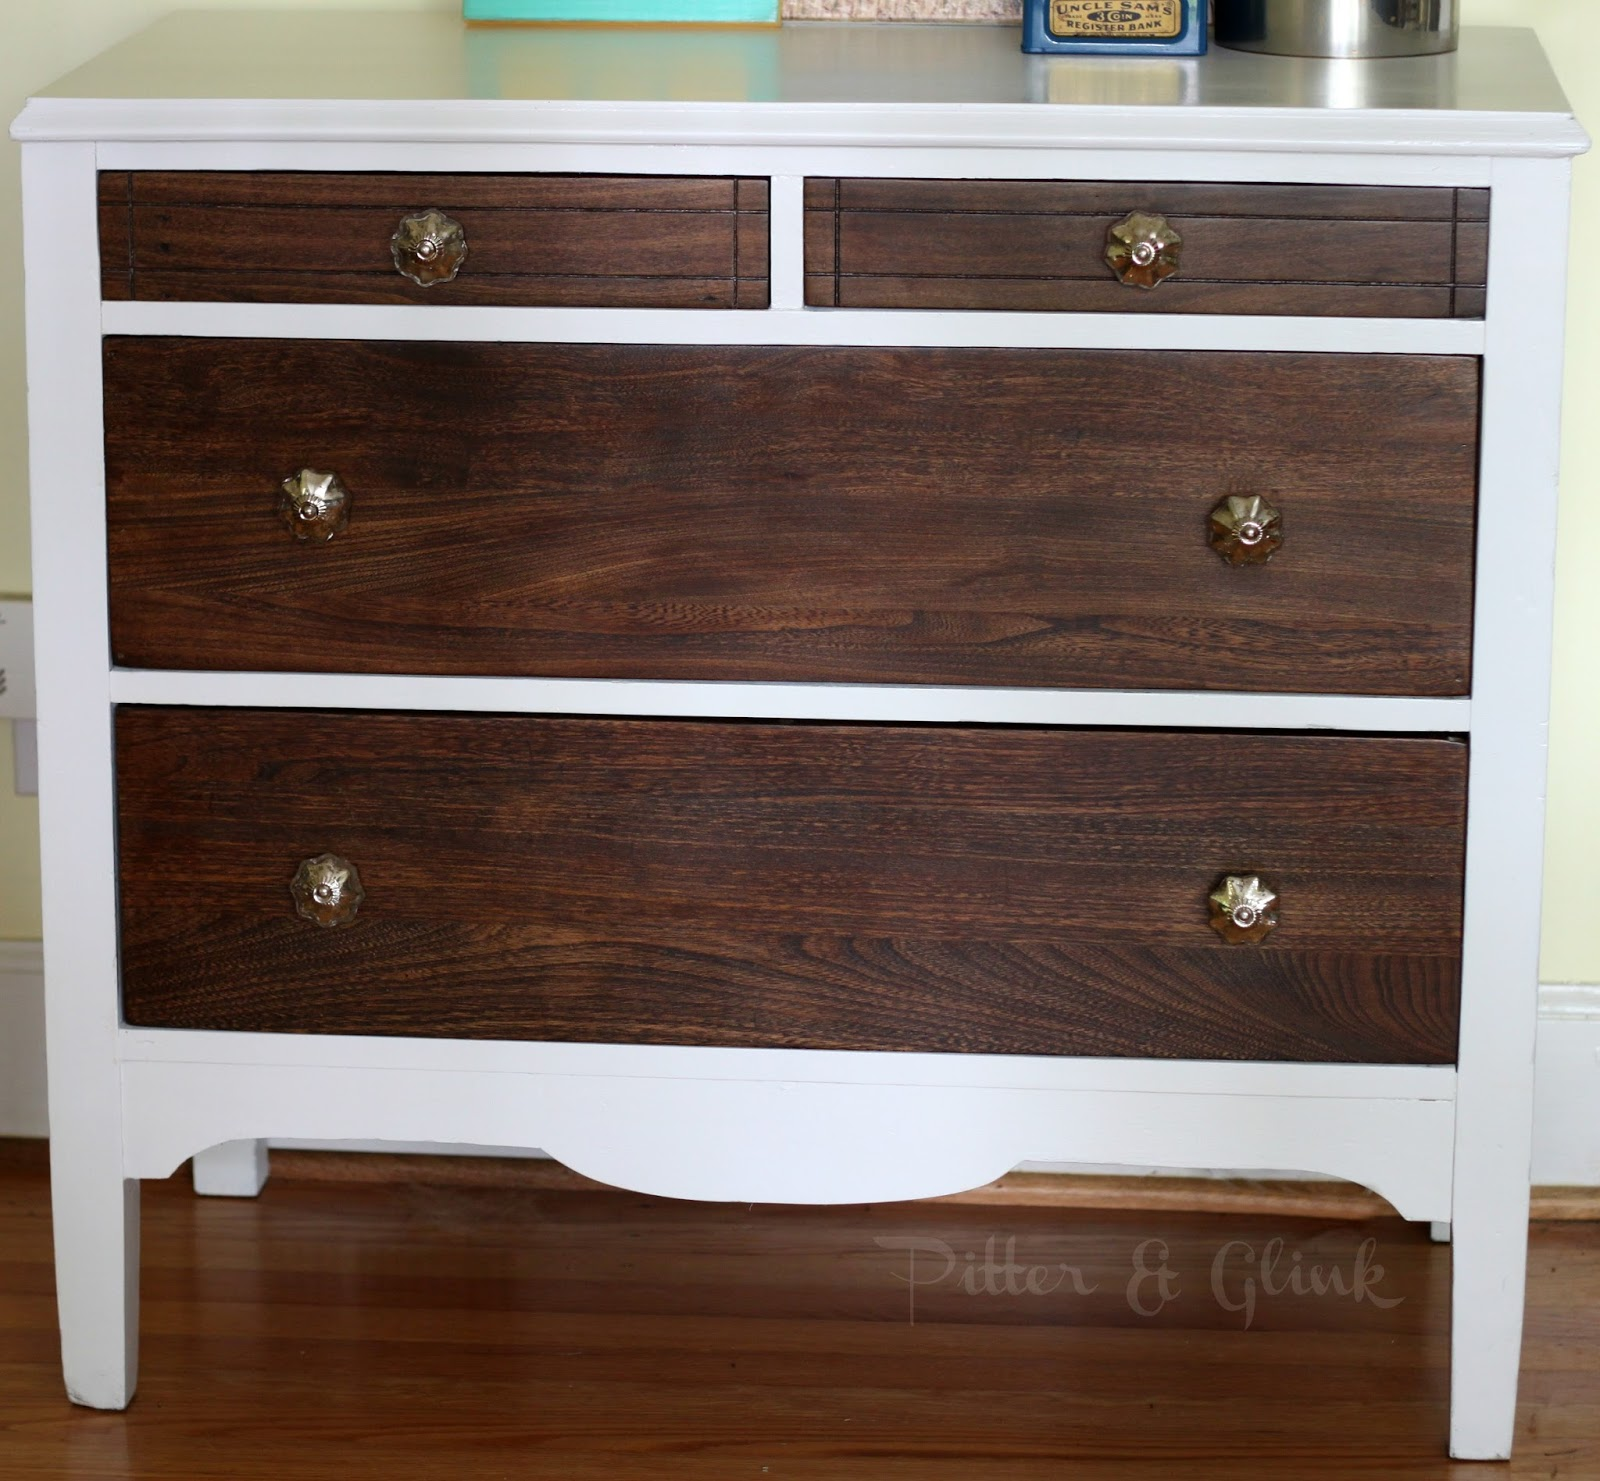 I have actually had this dresser finished for a long time i took these final pictures a while back but i didnt really like them